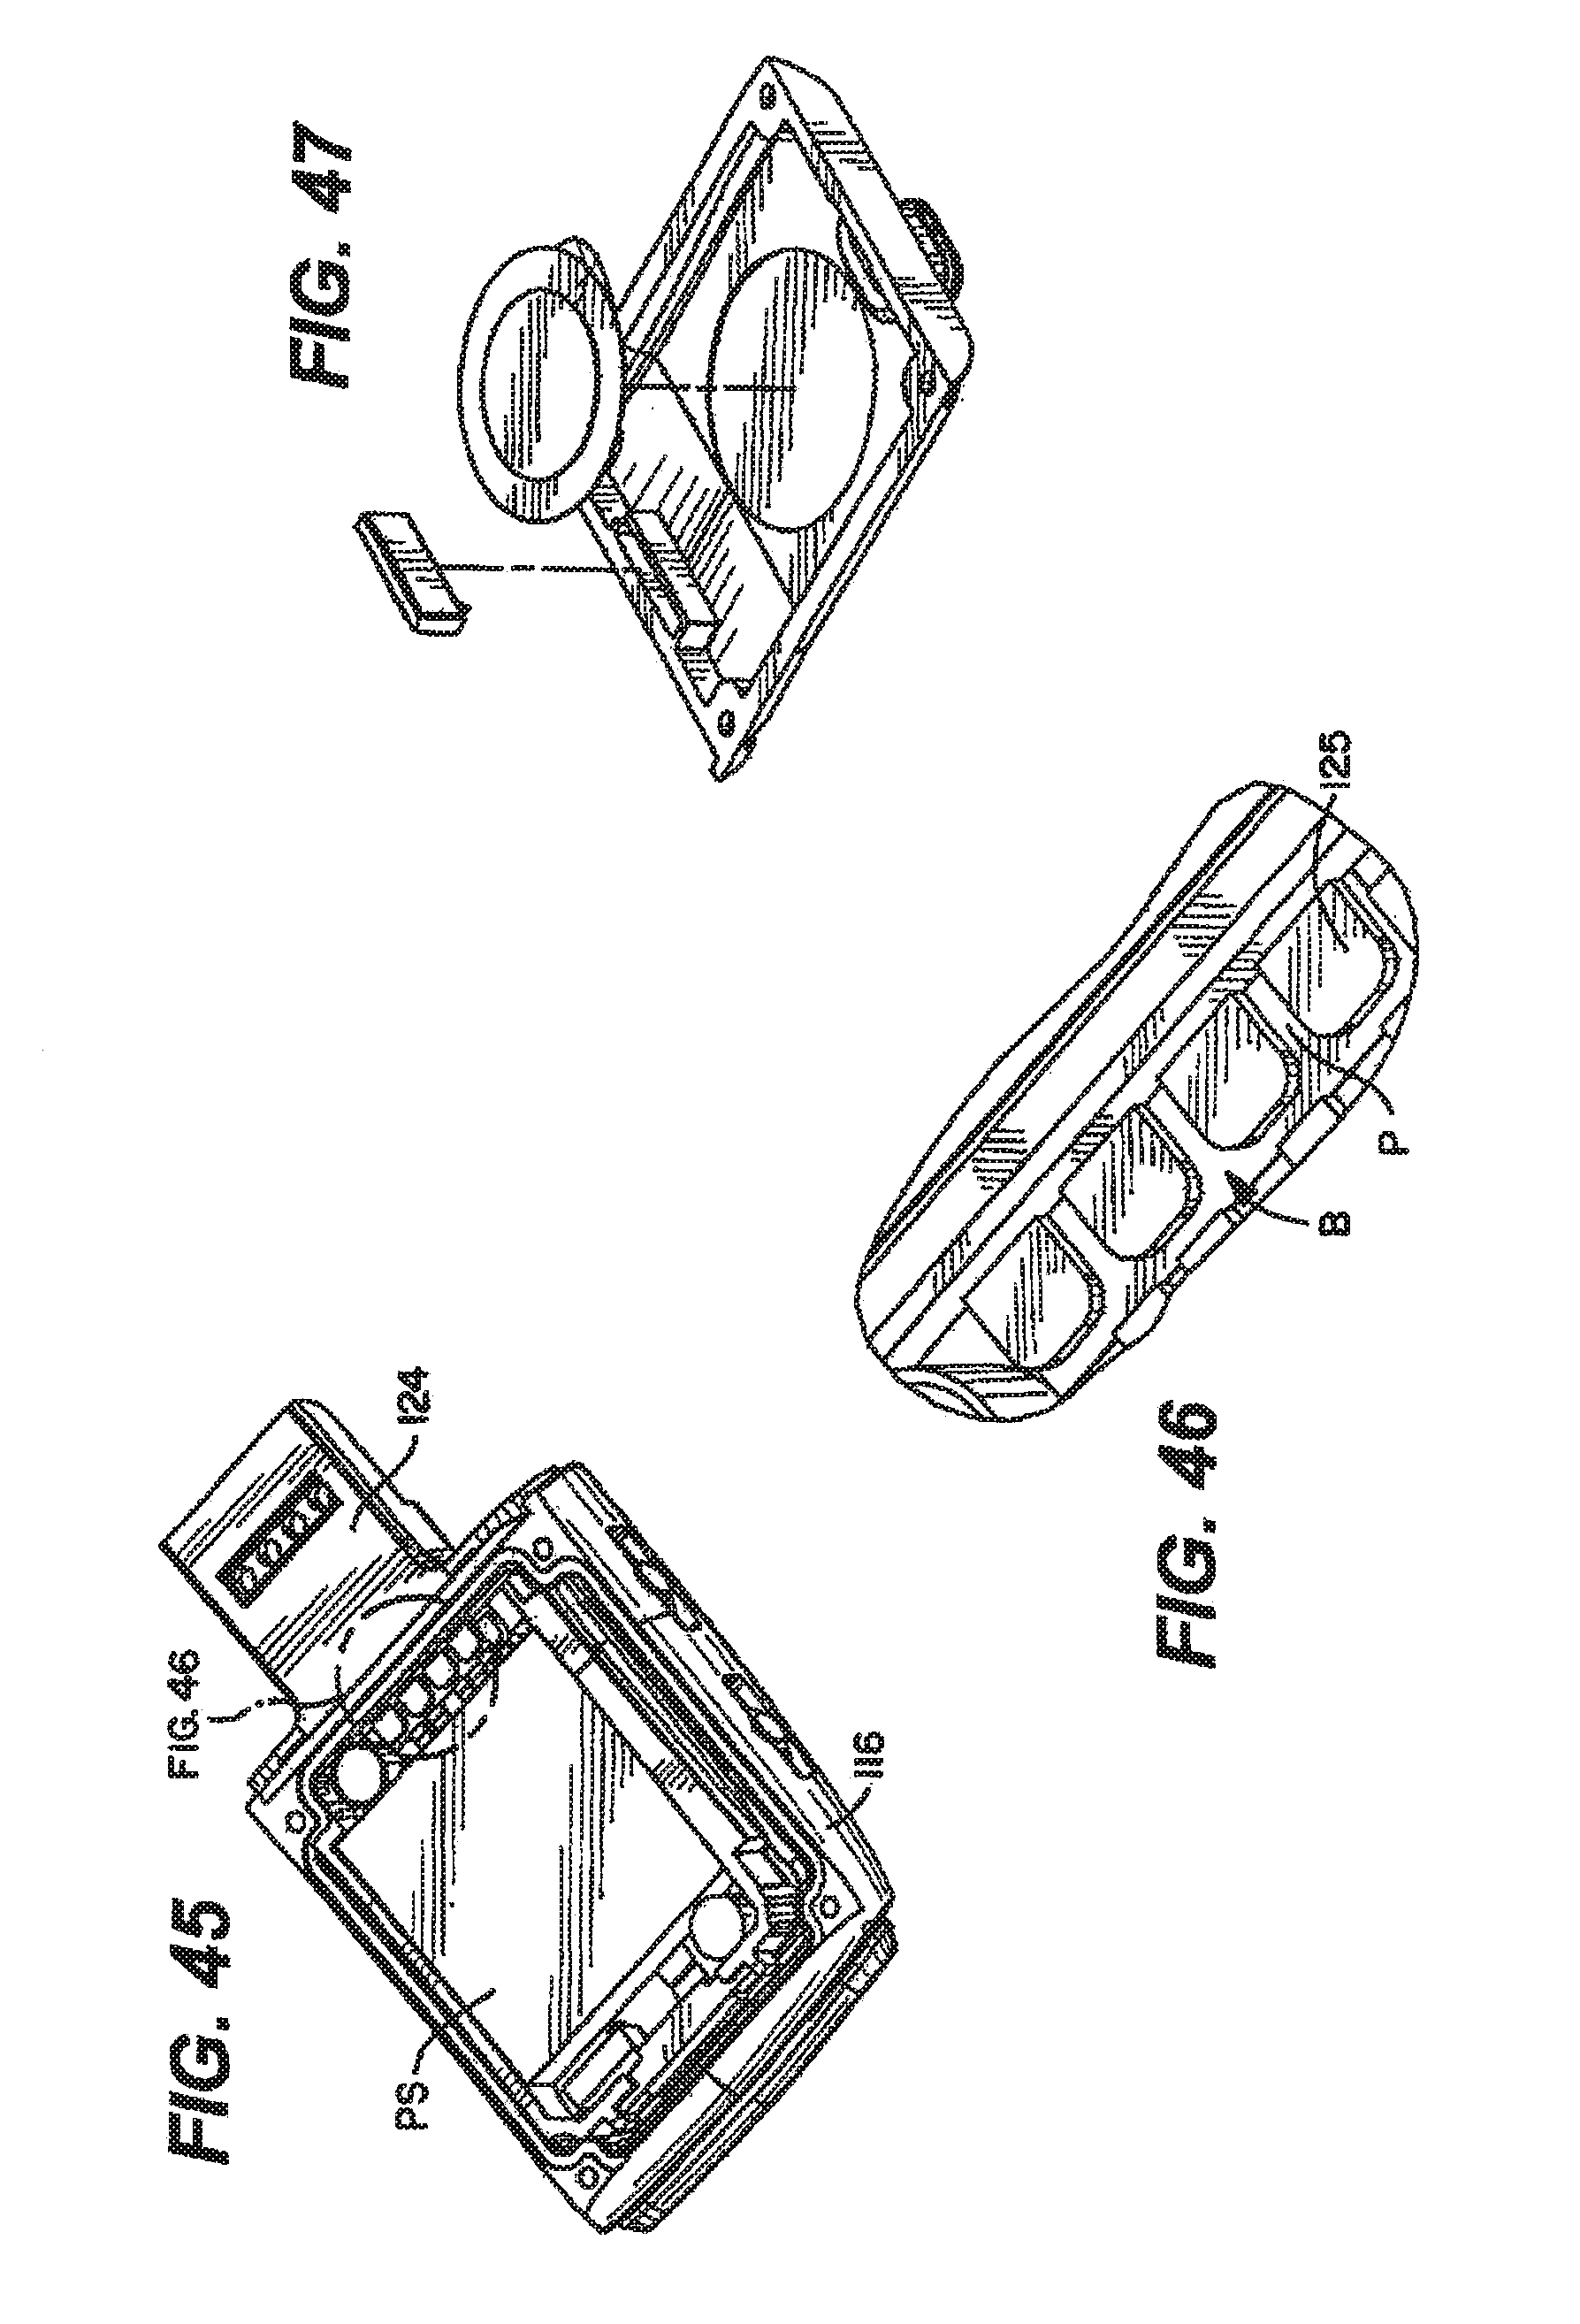 Patent Us 9891596 B2 1989 In Car Wiring Schematics Third Generation Fbody Message Images